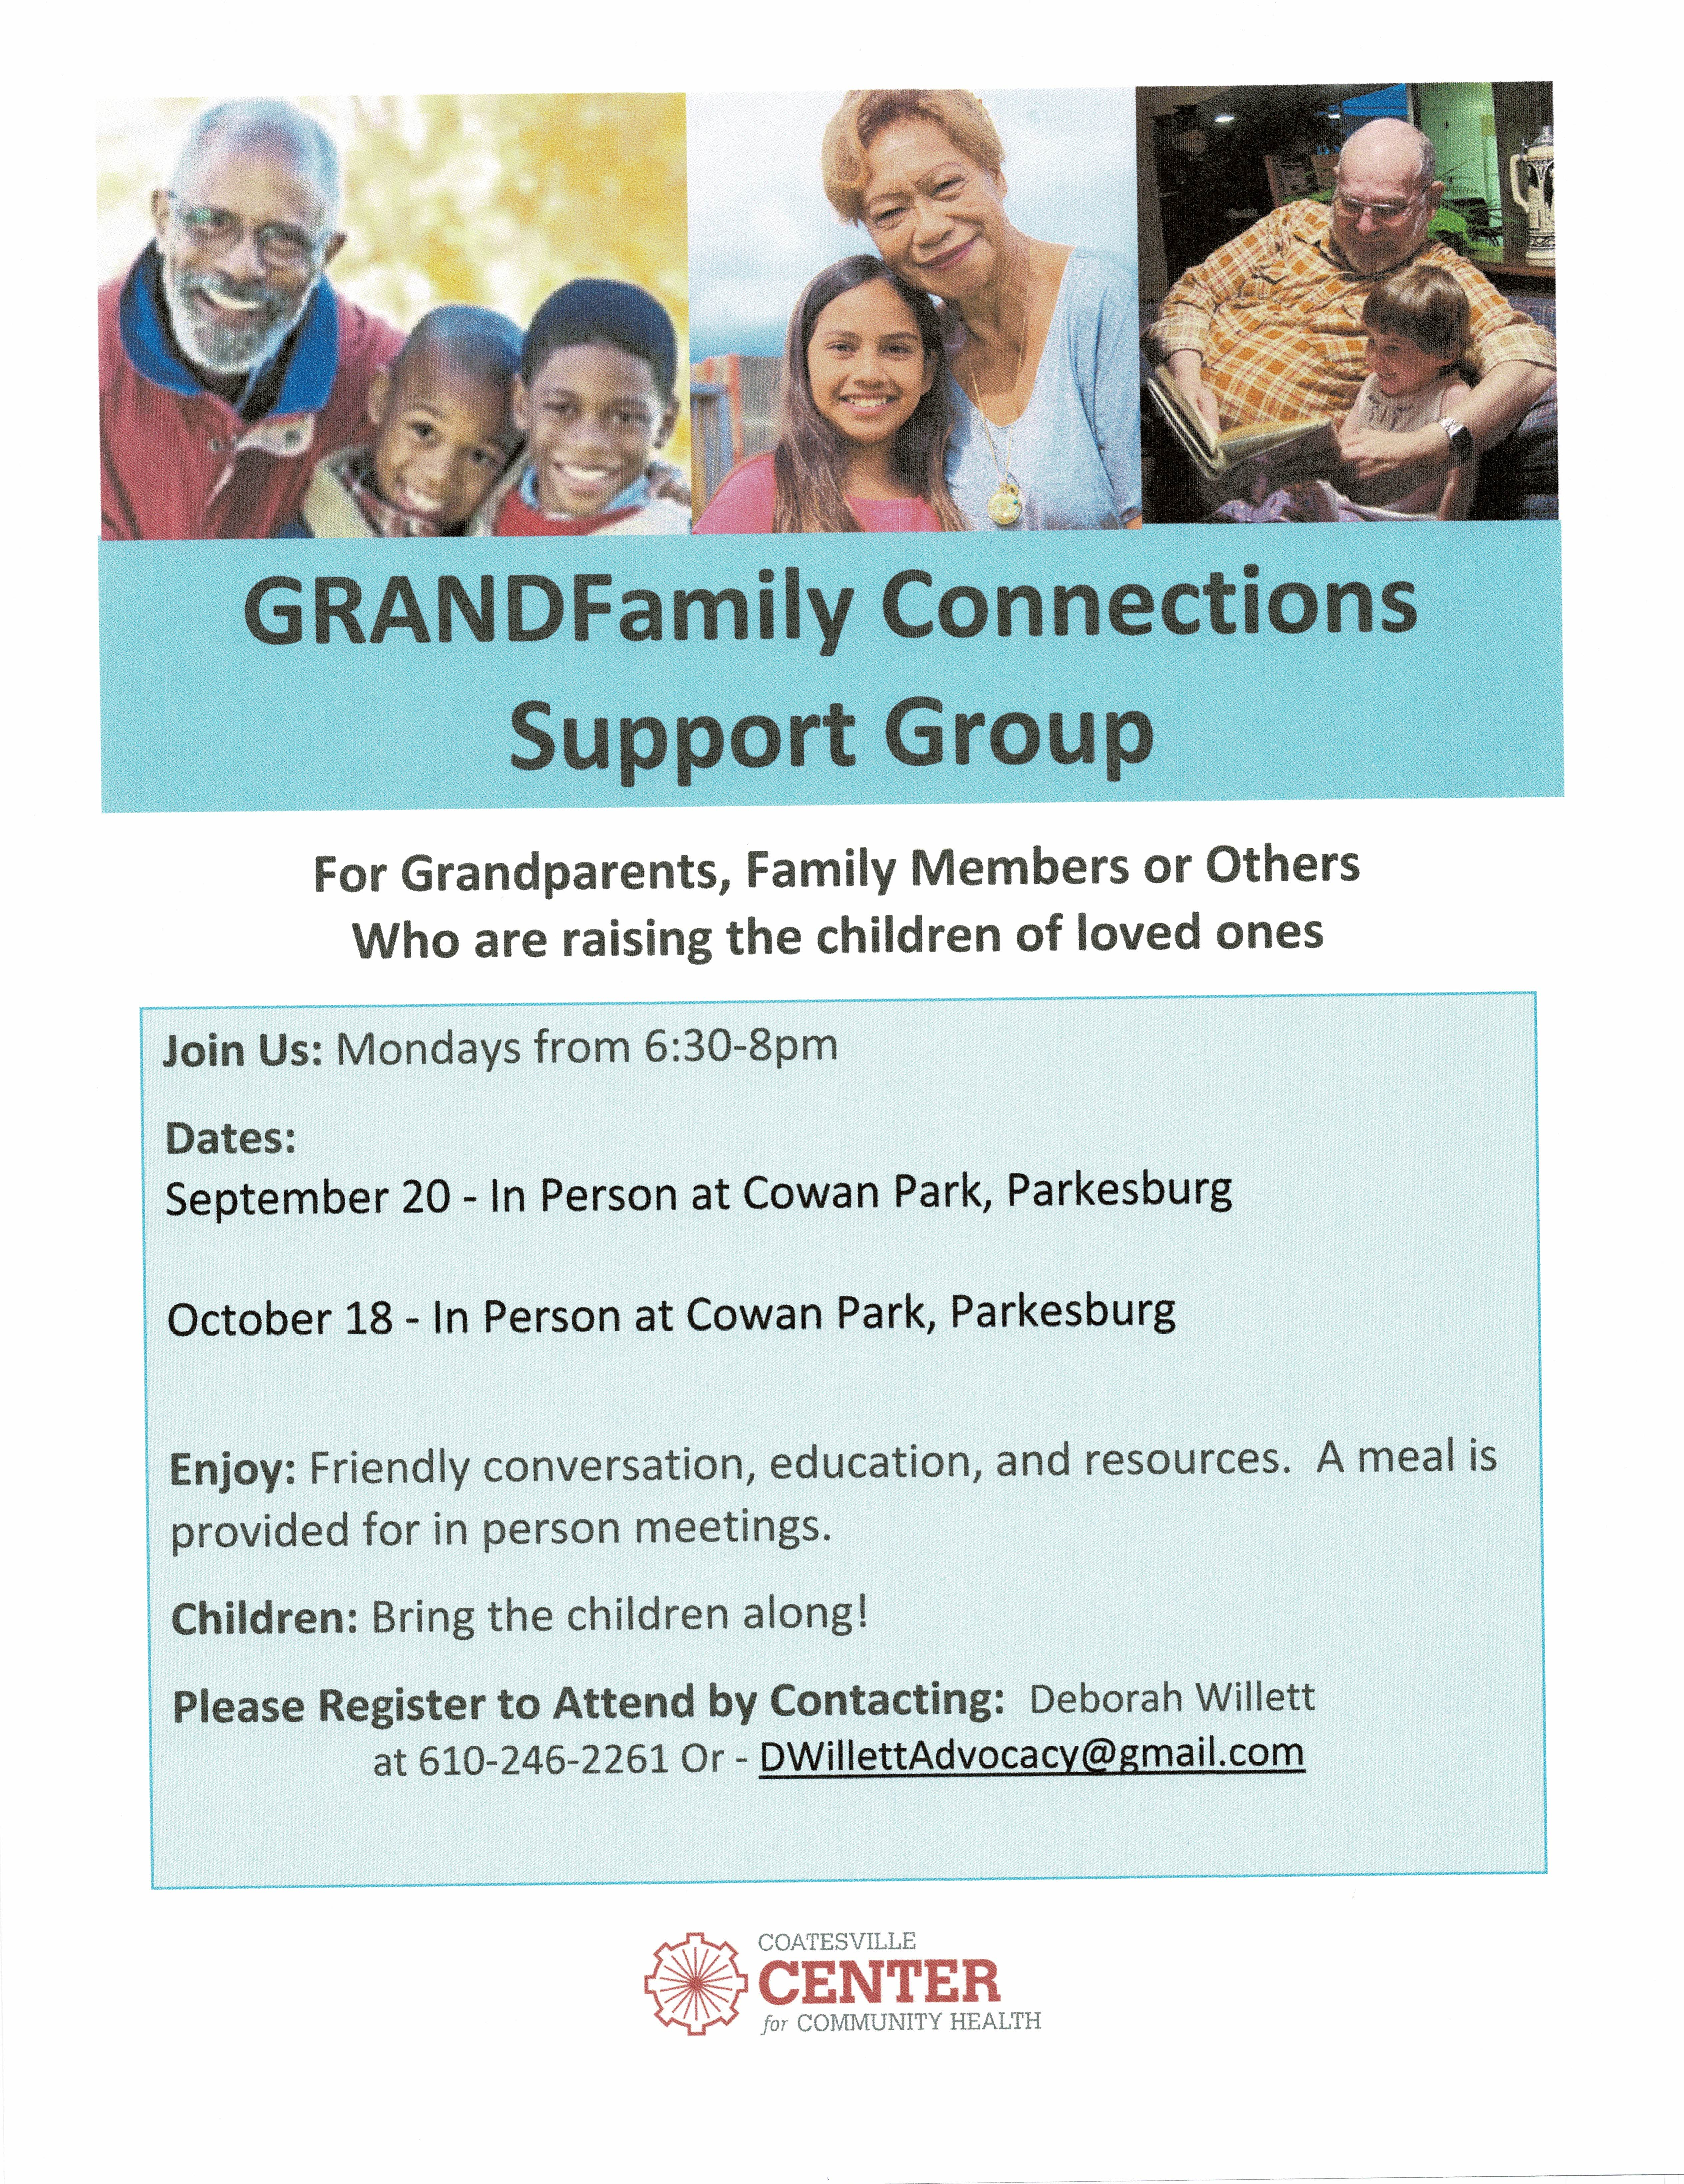 GRANDFamily Connections Support Group